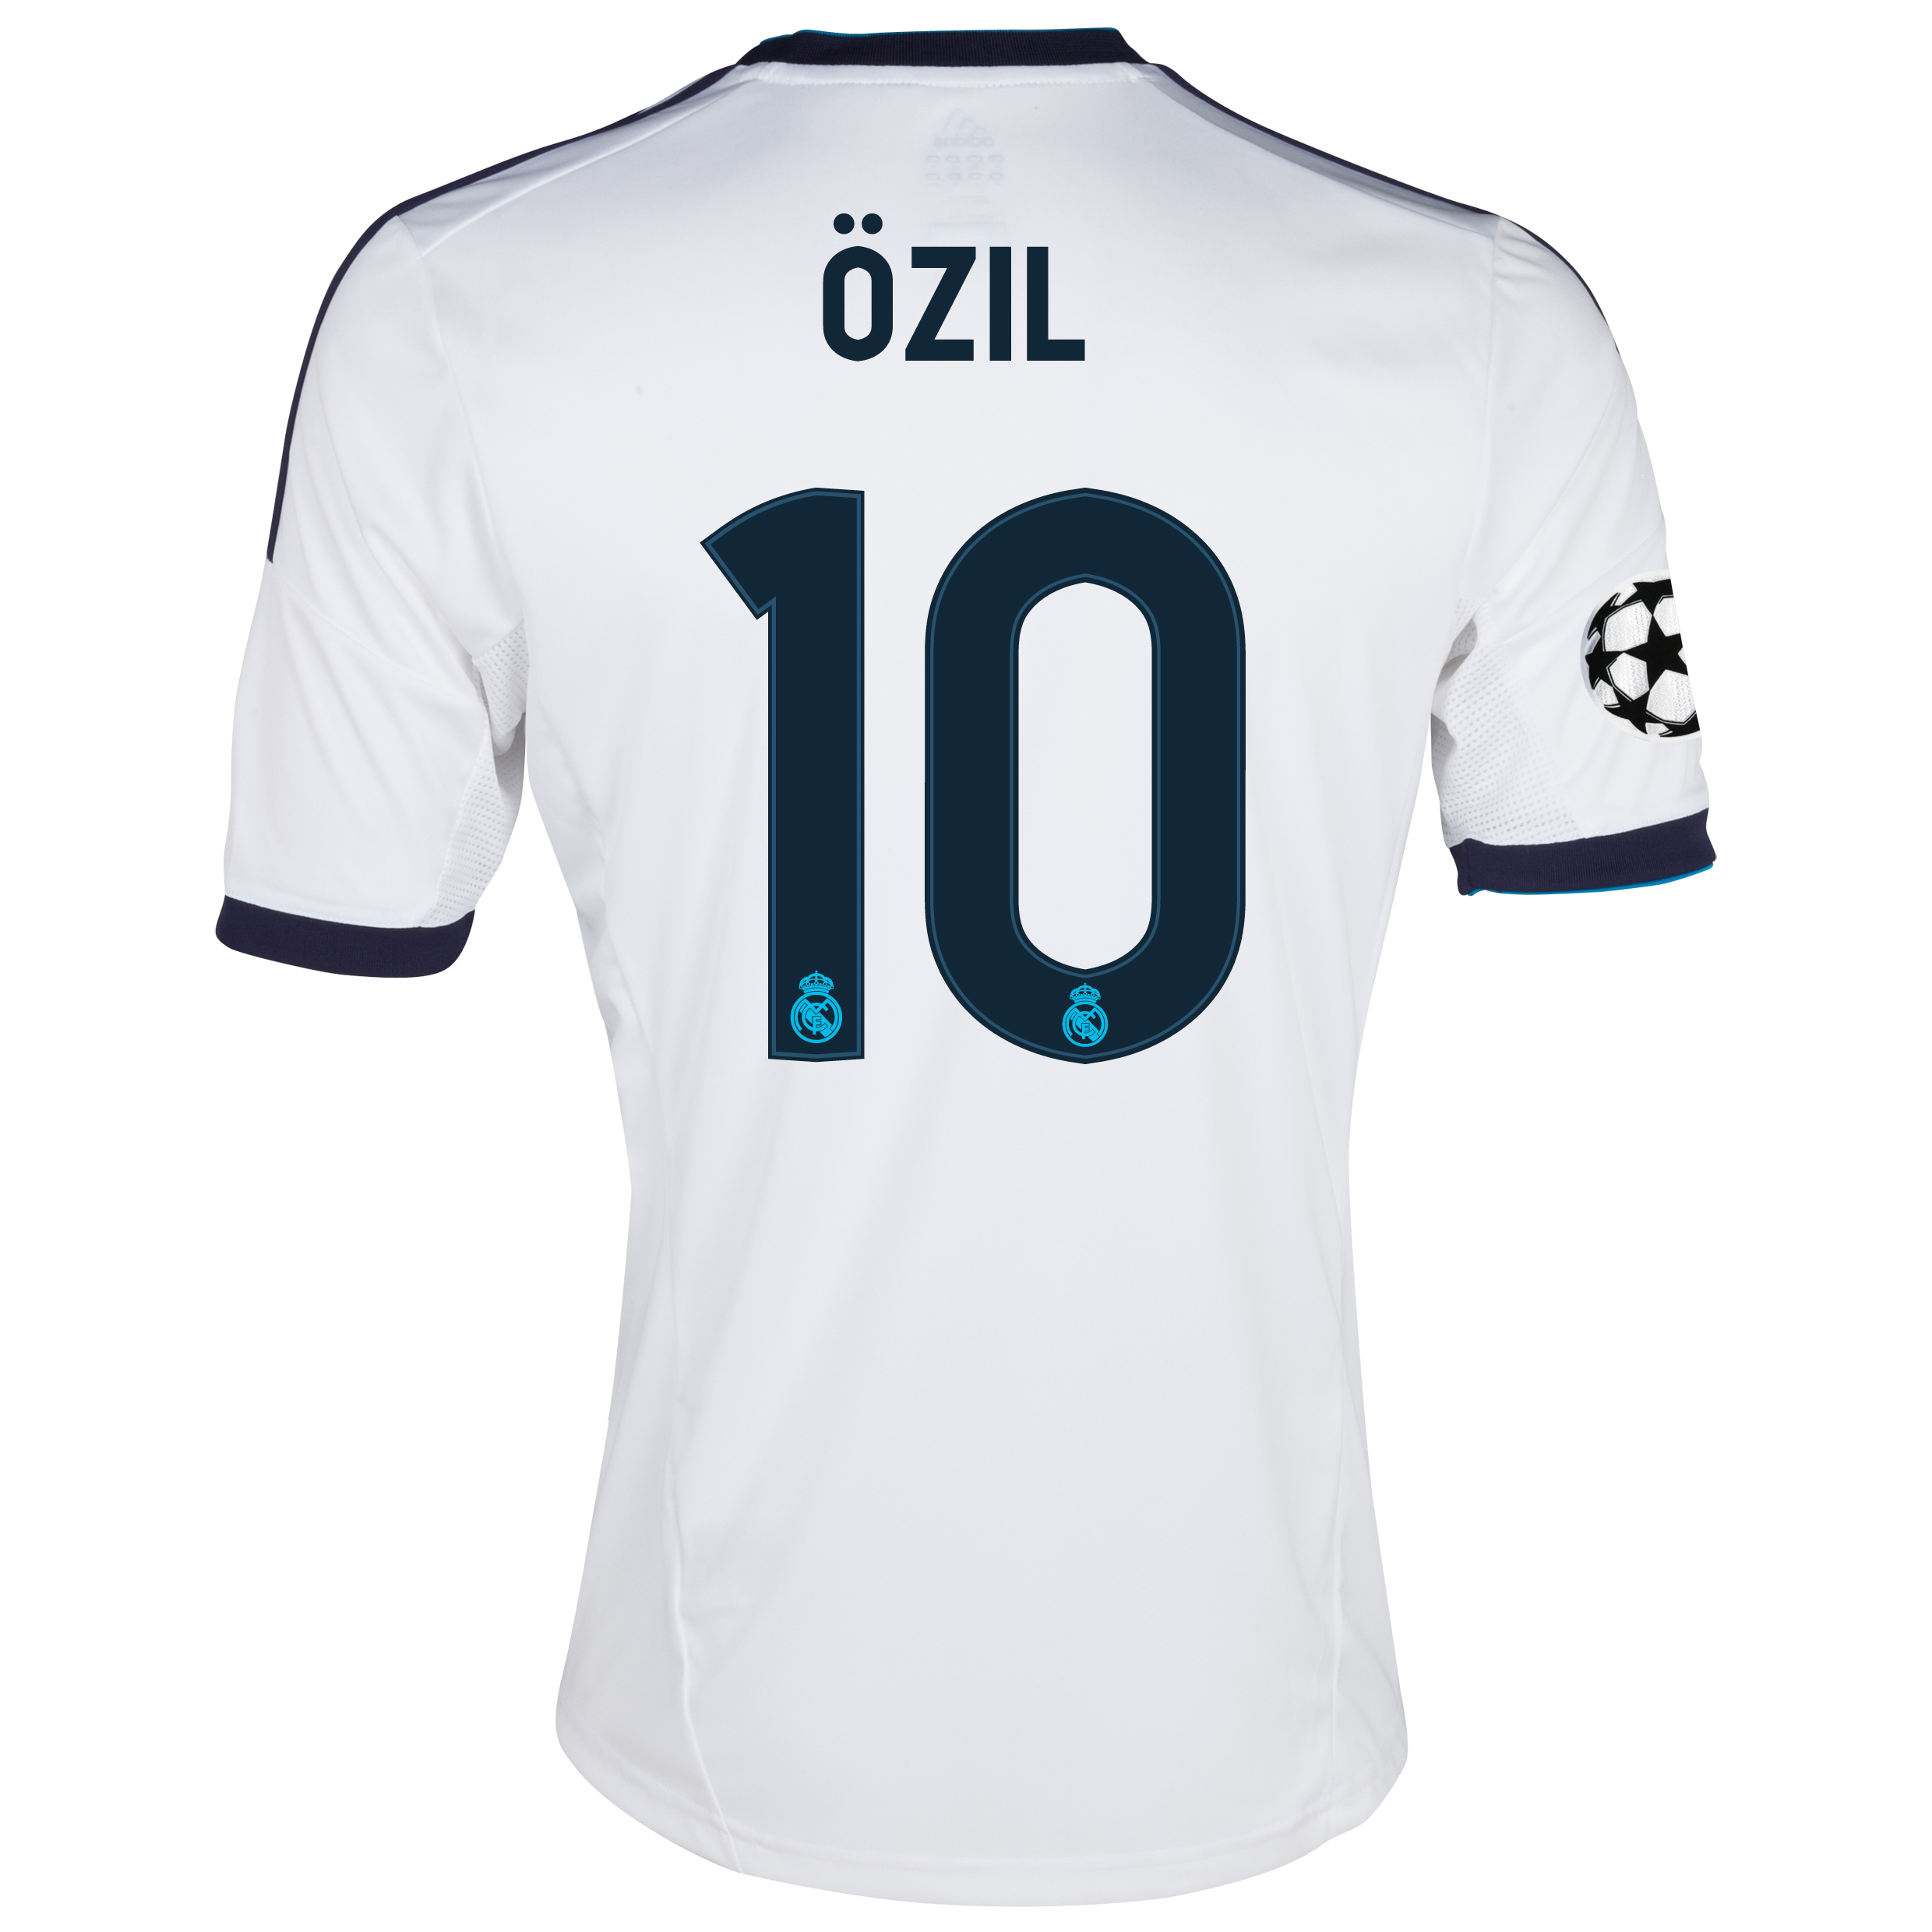 Camiseta local UEFA Champions League Real Madrid 2012/13 con impresin 10 zil